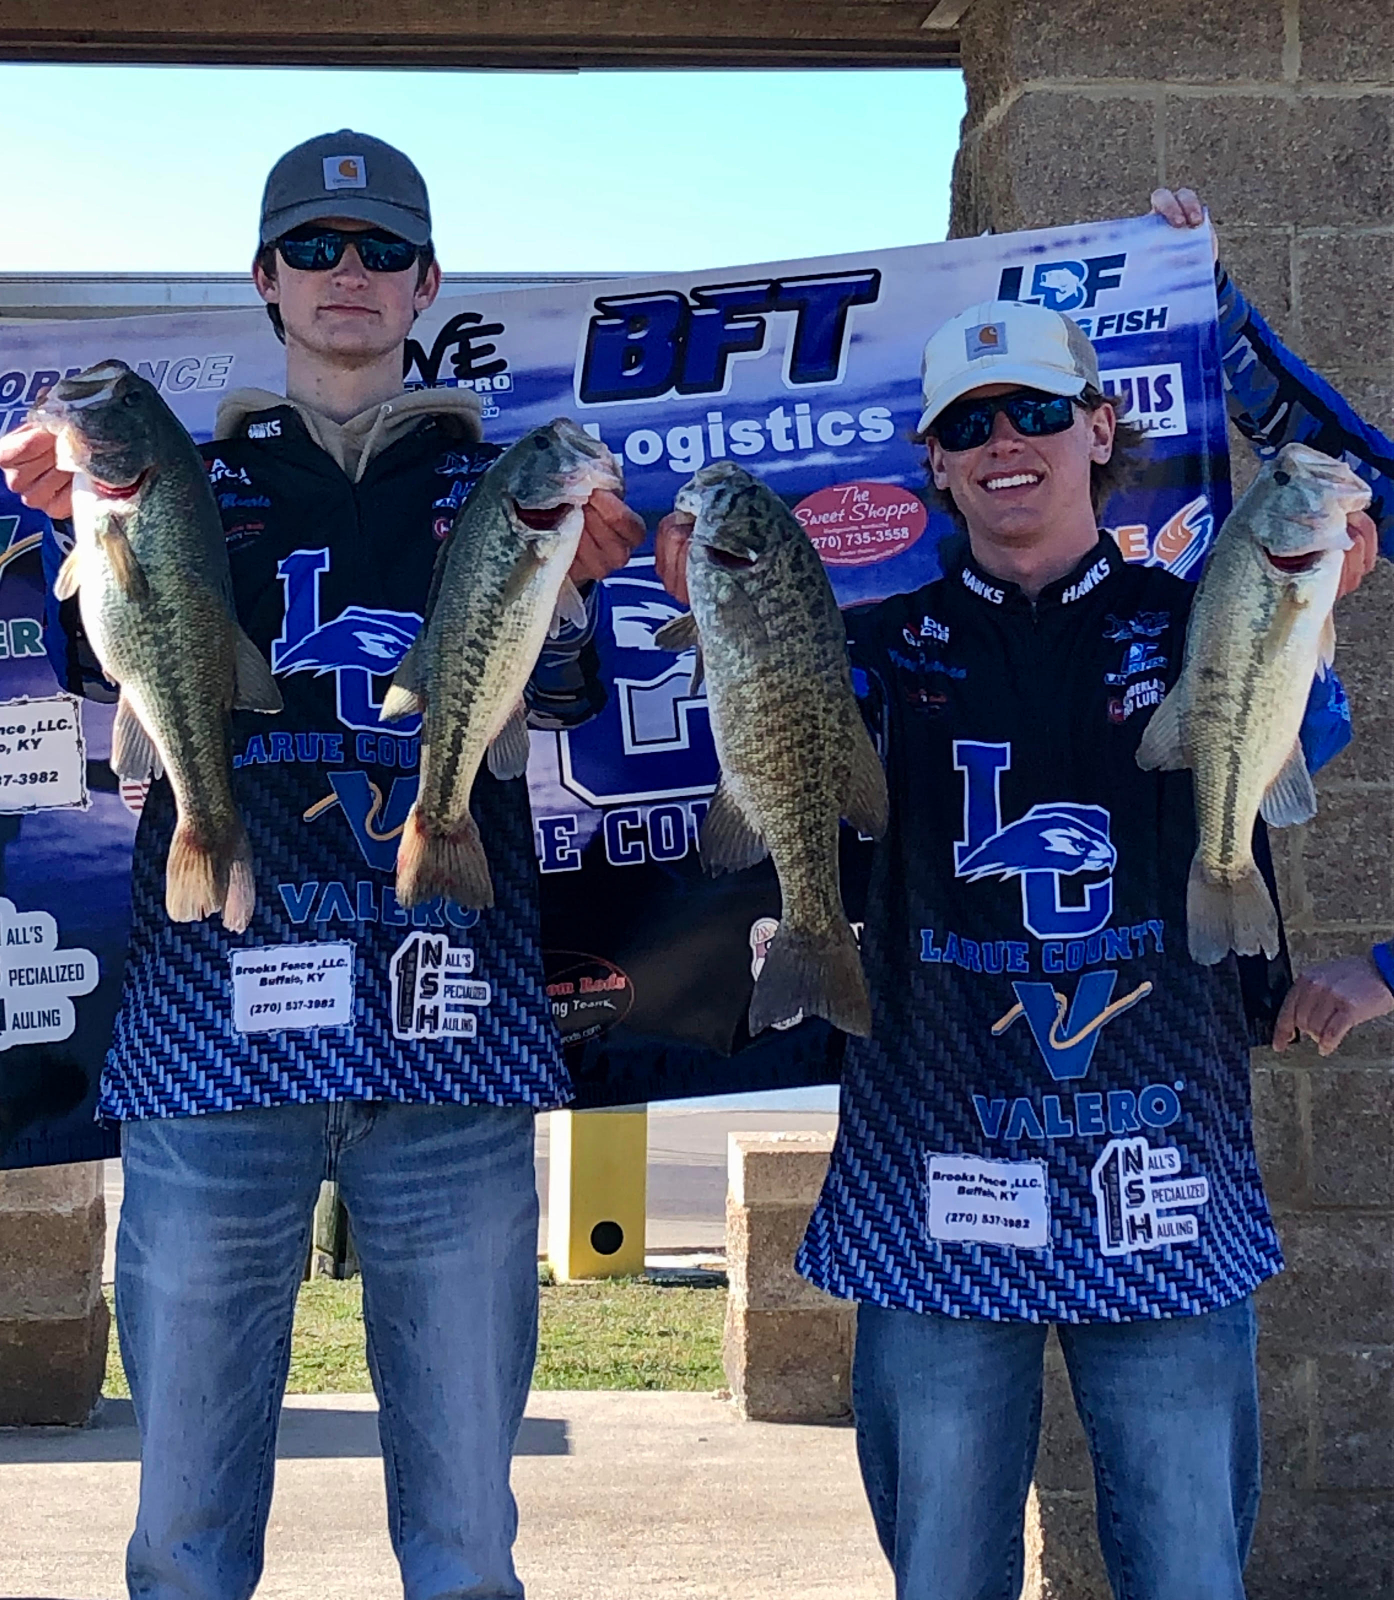 ANGLERS WYATT PEARMAN AND EVAN MORRIS TAKE 1ST PLACE AT BOYLE CO OPEN